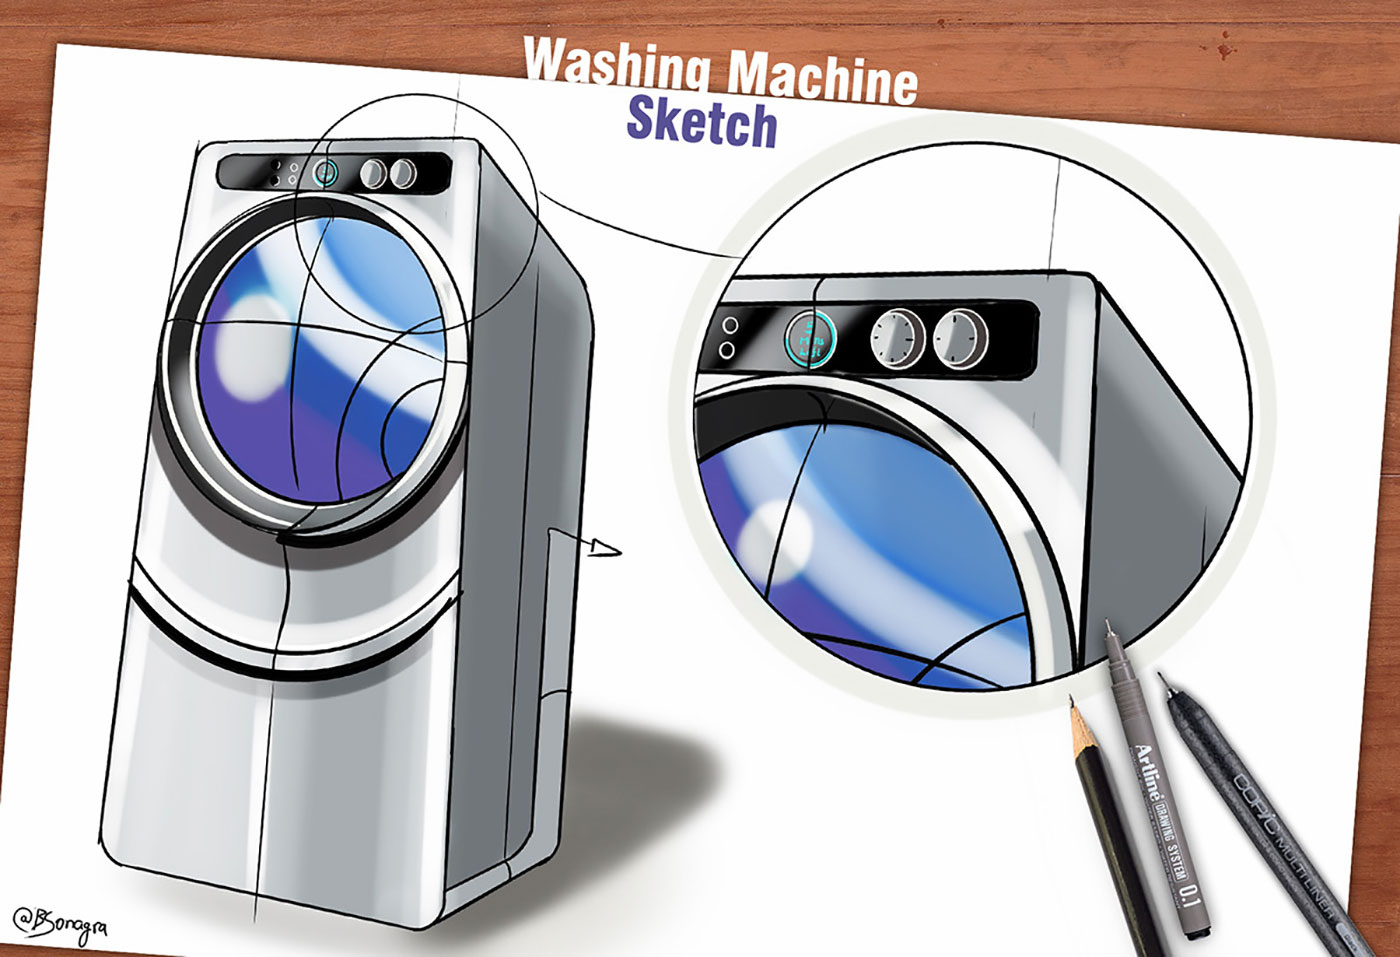 Drawing of a Washing Machine